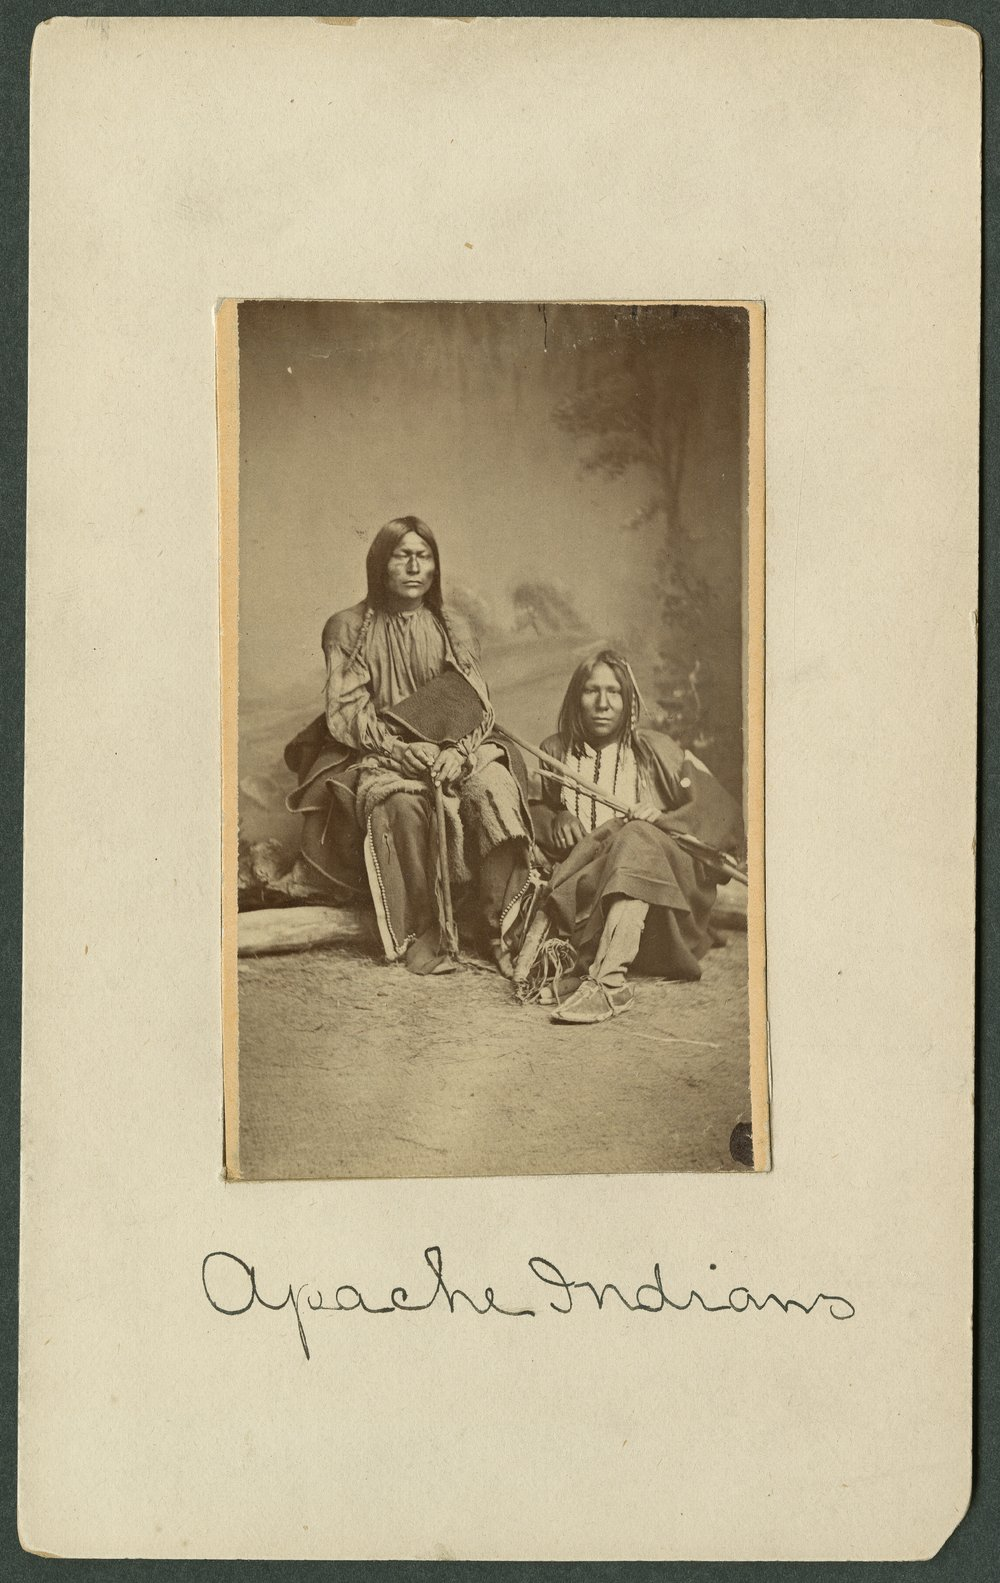 Two Apache men in Indian Territory - 1